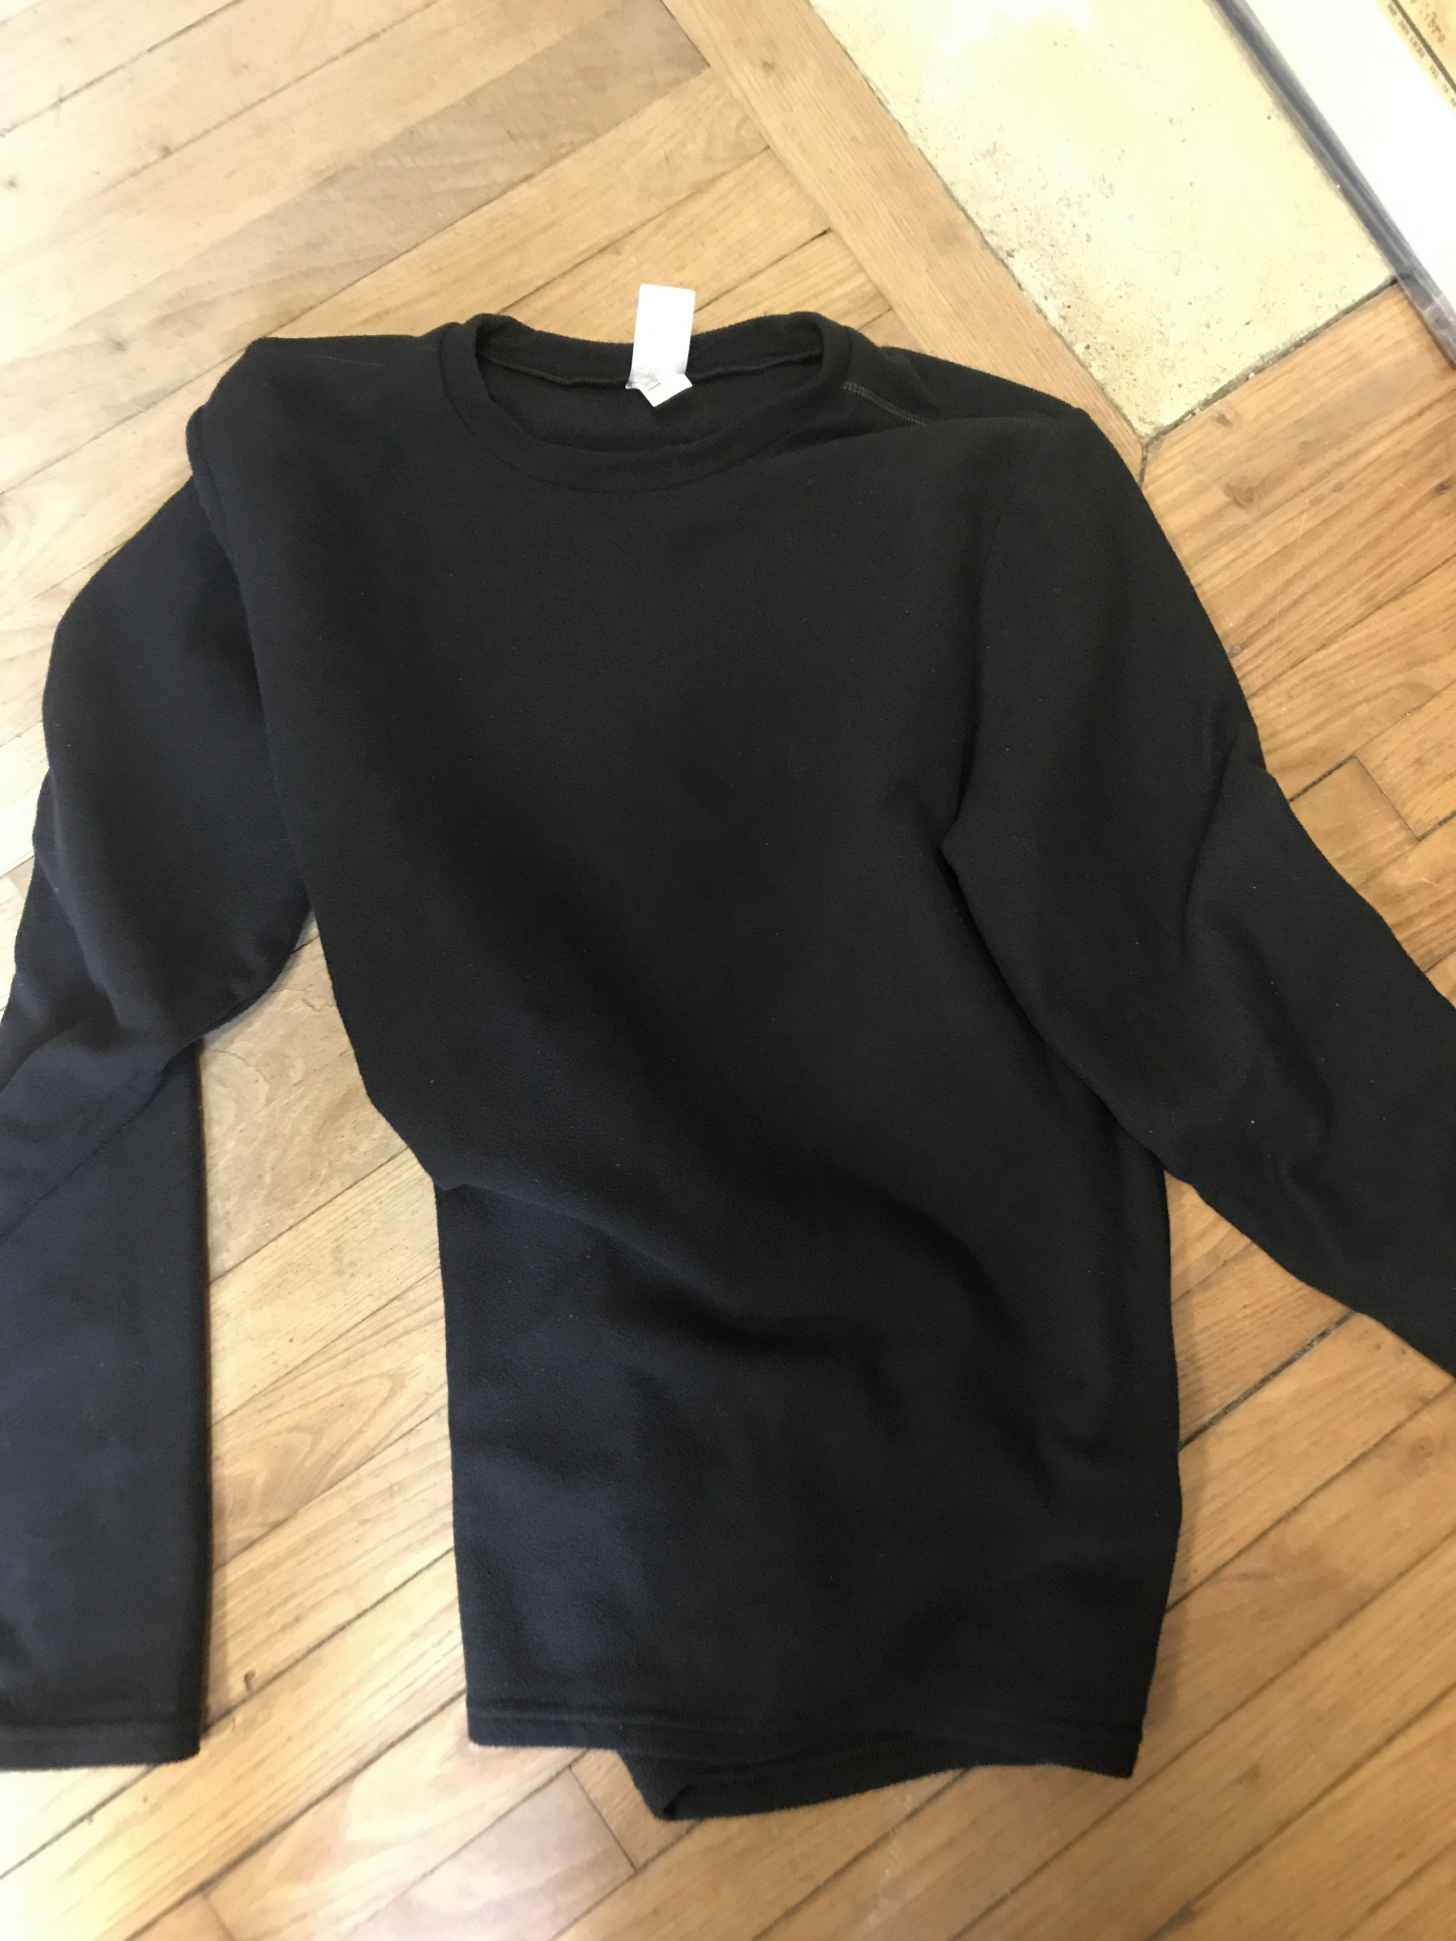 Trouvé - Pull, gilet - Rennes, France - Sherlook.fr